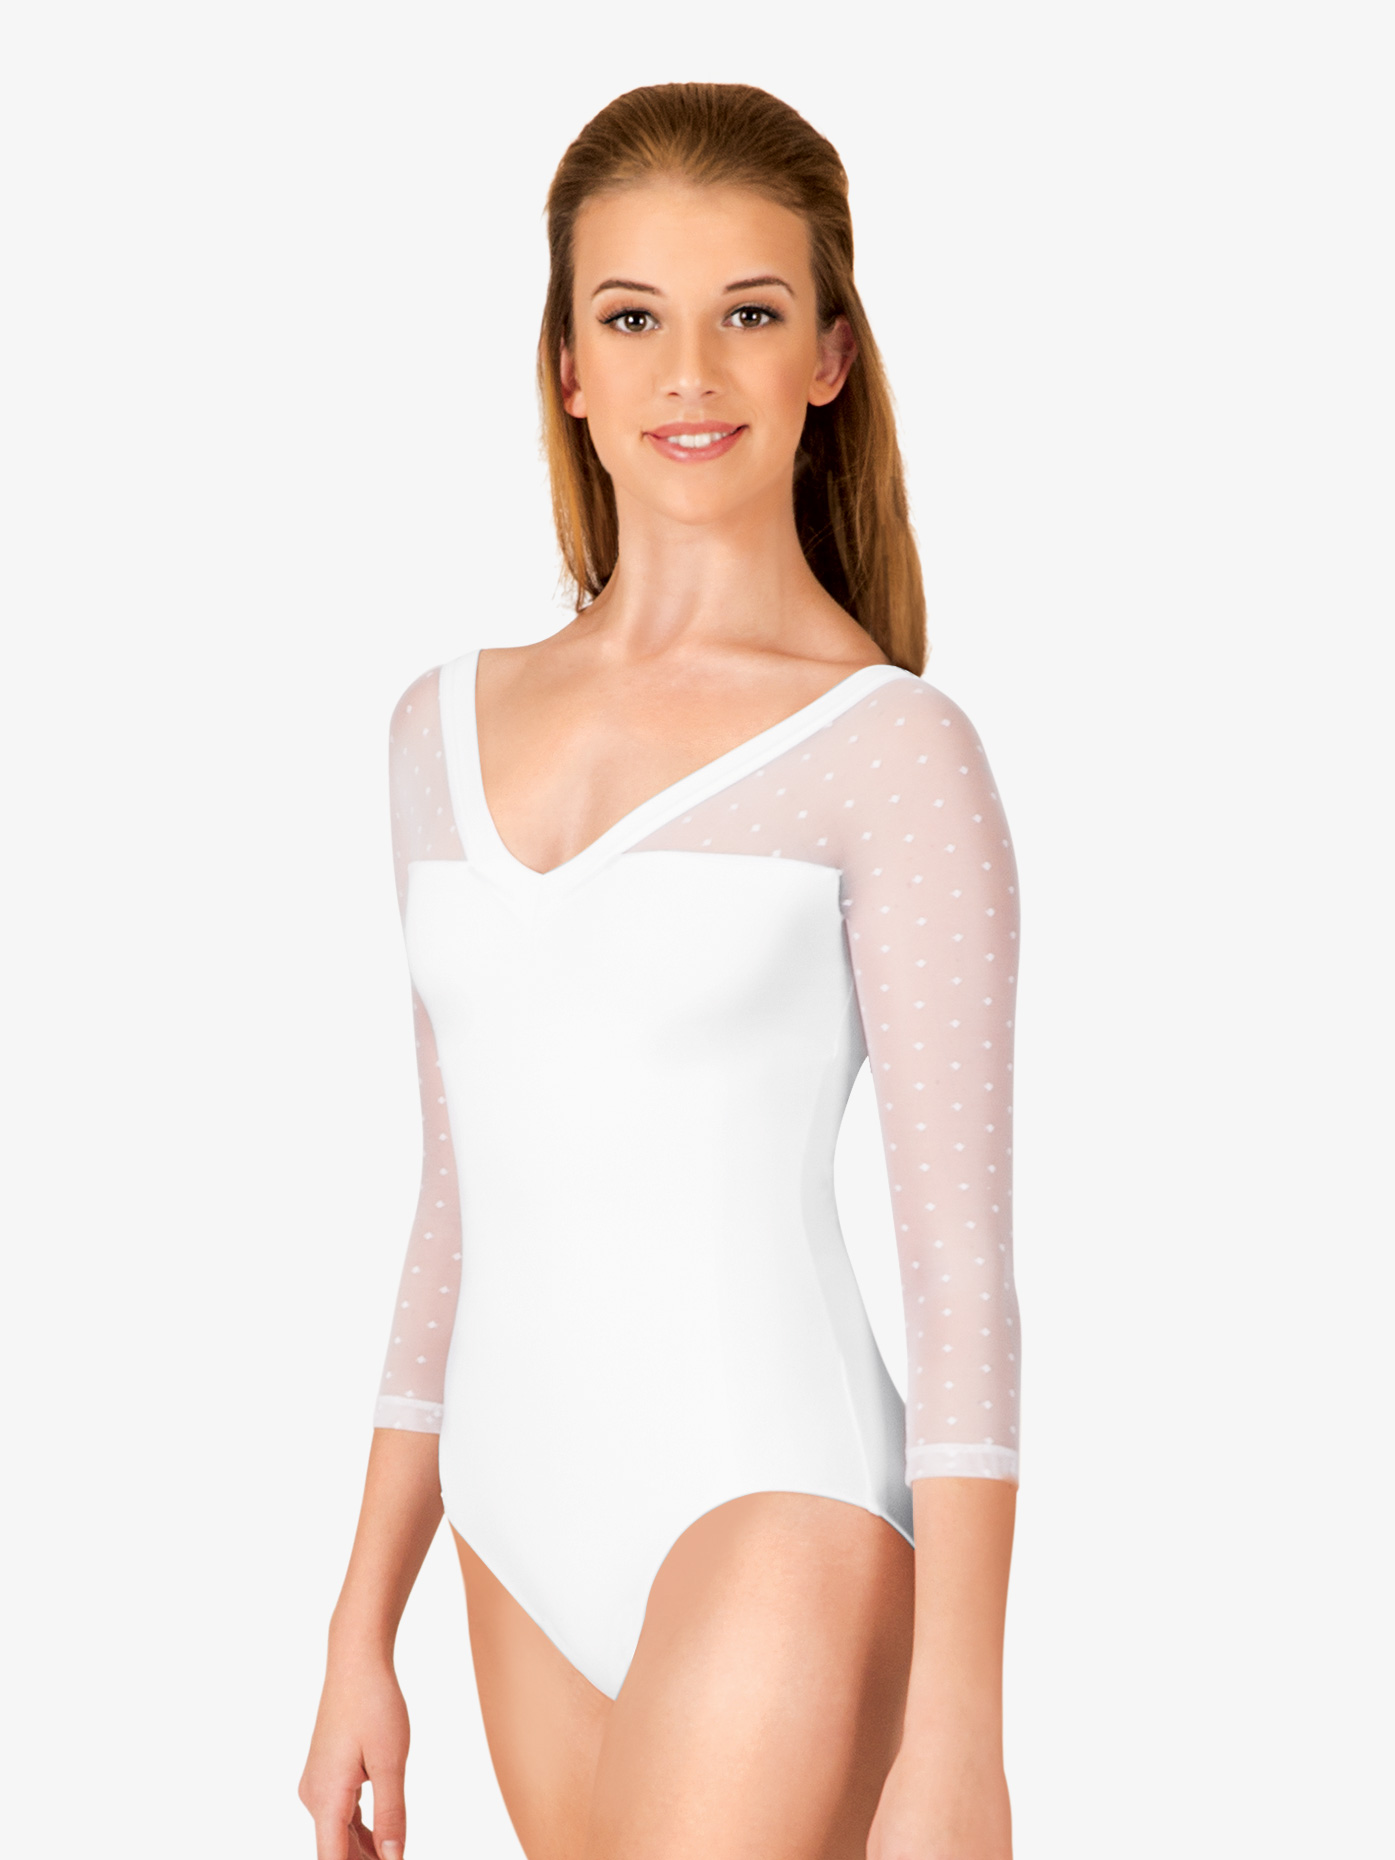 654ea4911fc Natalie Couture Leotards and Dancewear at DancewearDeals.com